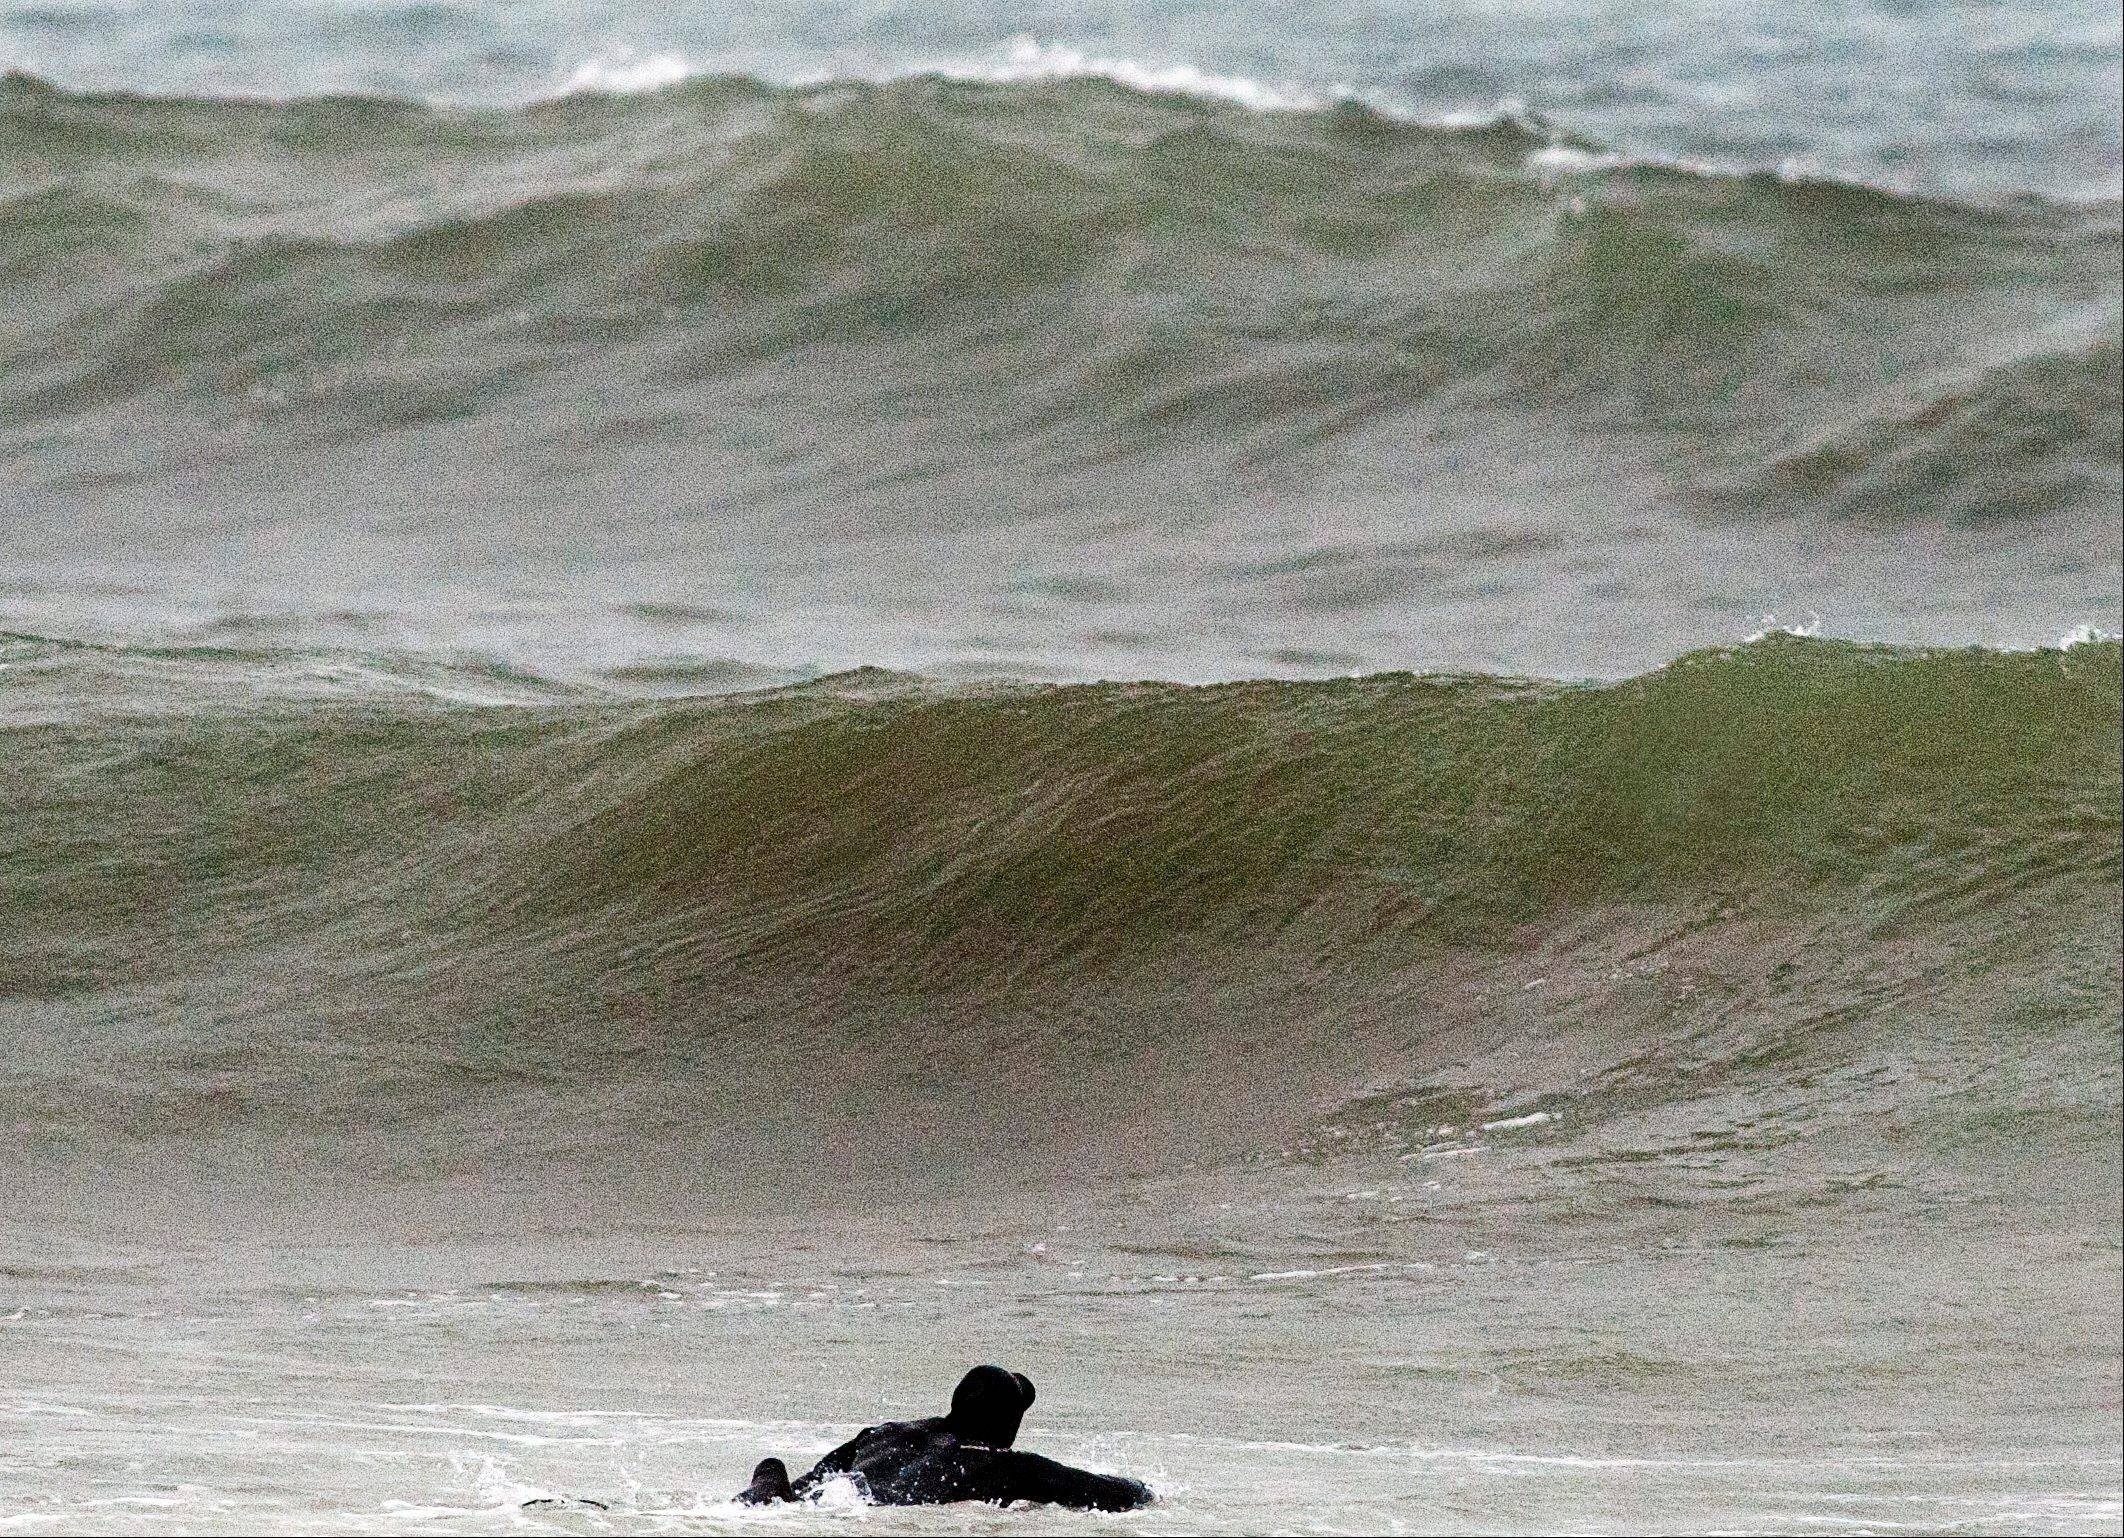 A surfer paddles out into waves generated by Tropical Storm Leslie, at Lawrencetown Beach near Halifax, Nova Scotia, Sunday. Leslie is expected to make landfall in Newfoundland early in the week bringing heavy rain and high winds.